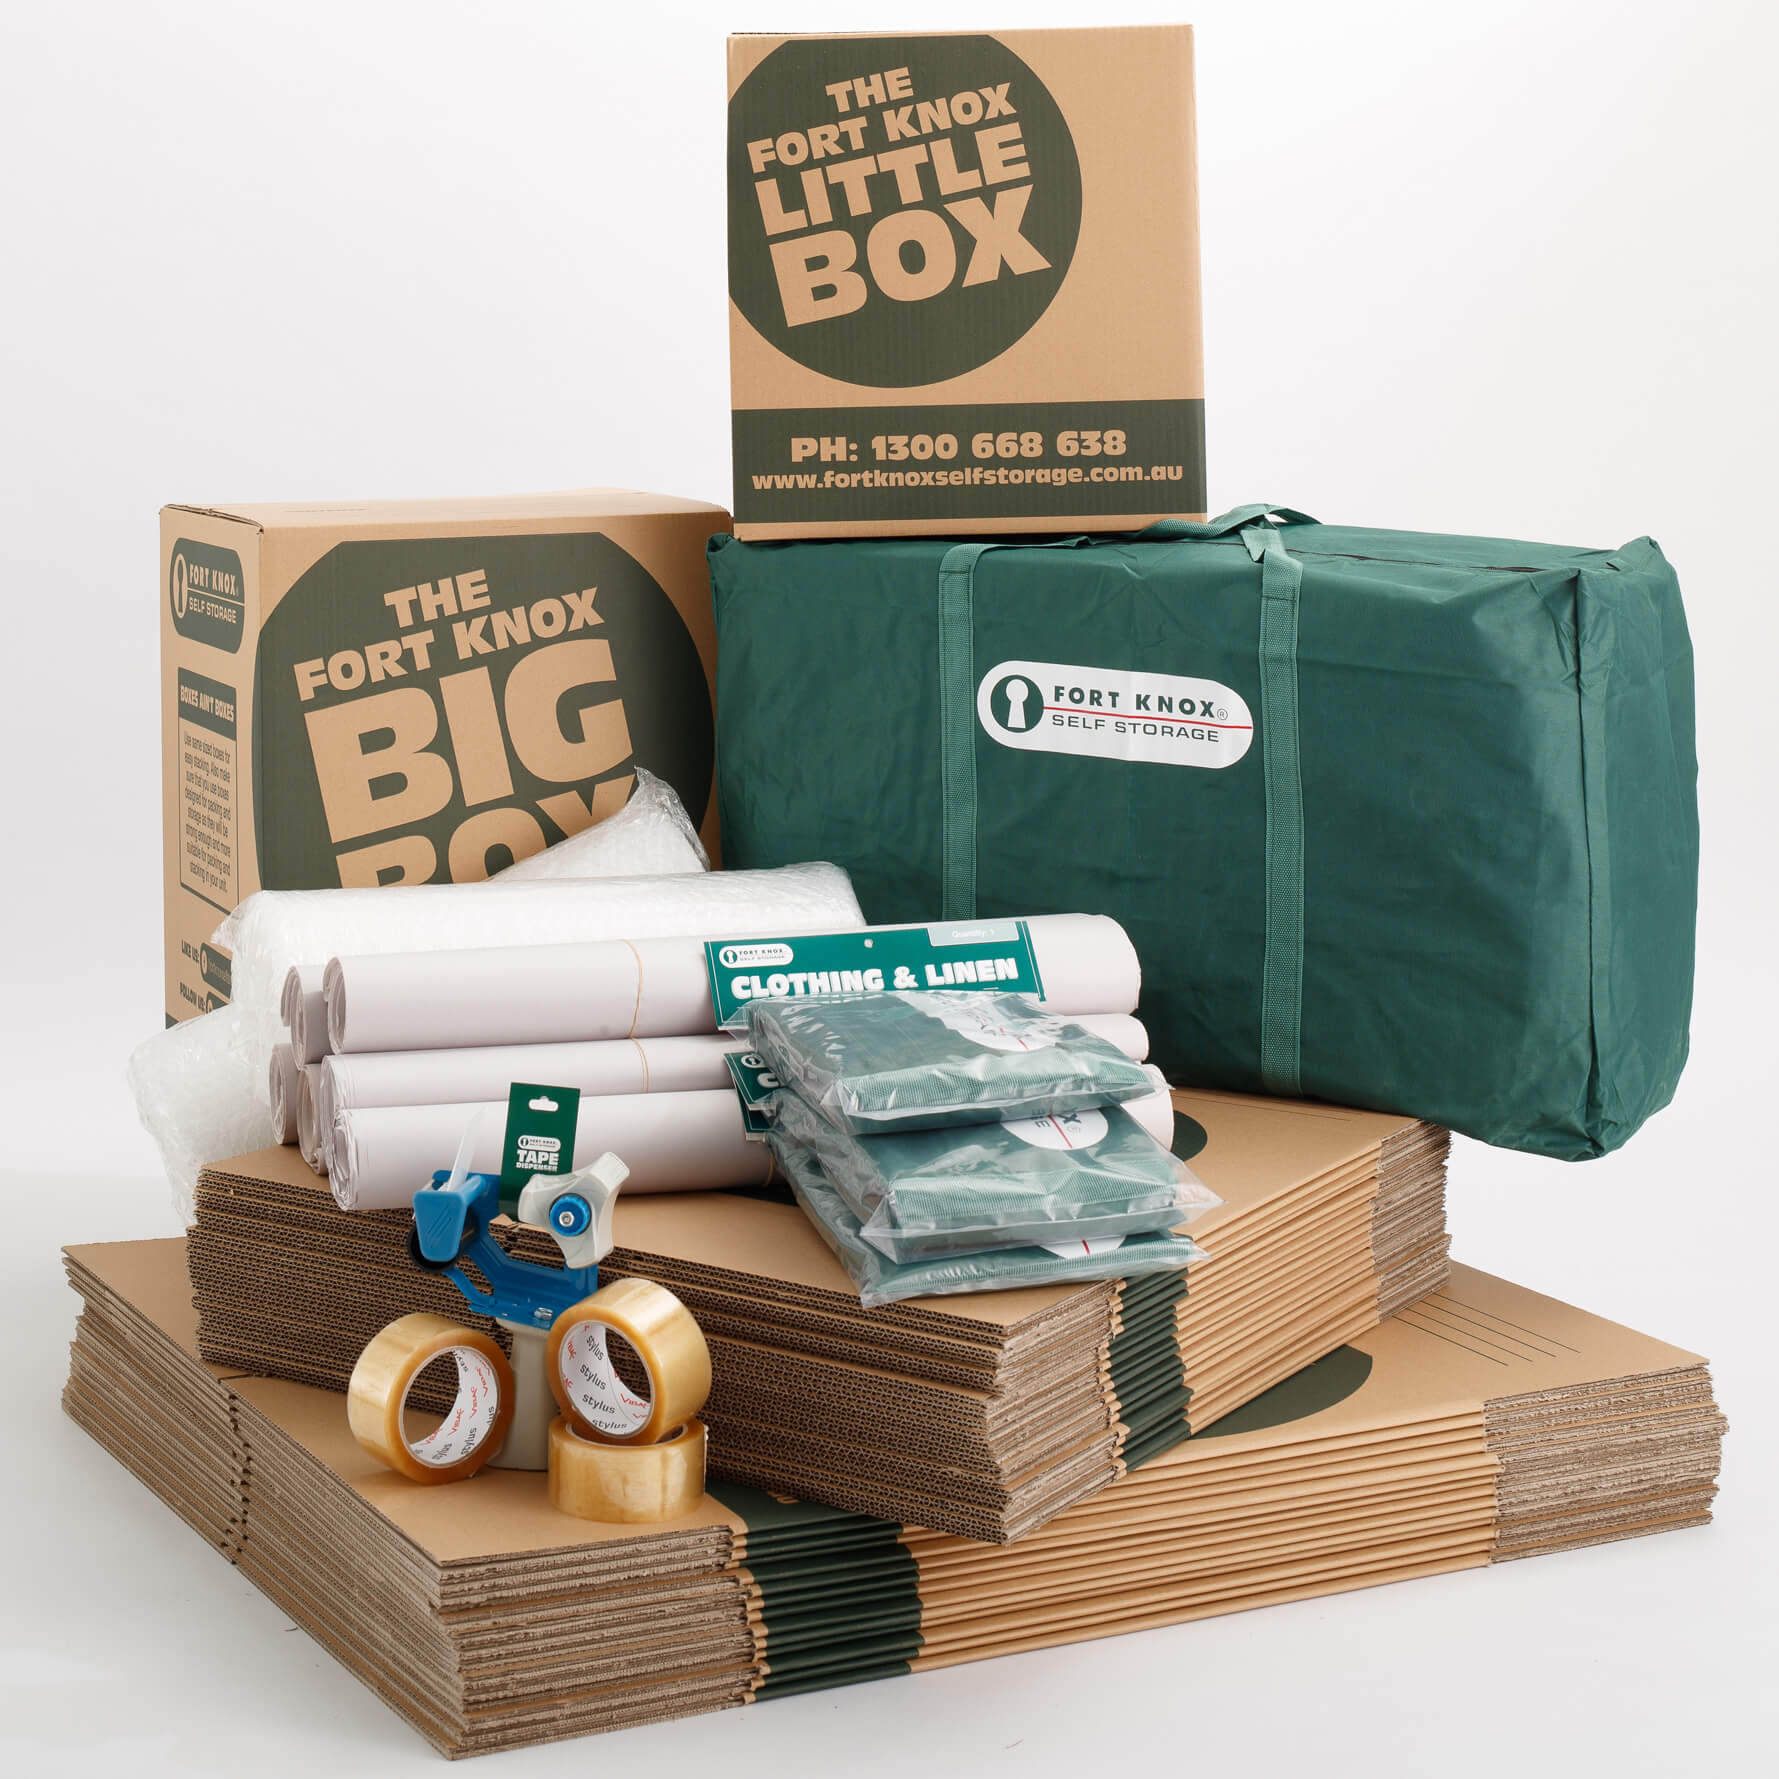 Discount bulk buy moving boxes and packing supplies for a medium size home, boxes, bags, butcher's paper, bubble wrap and tape